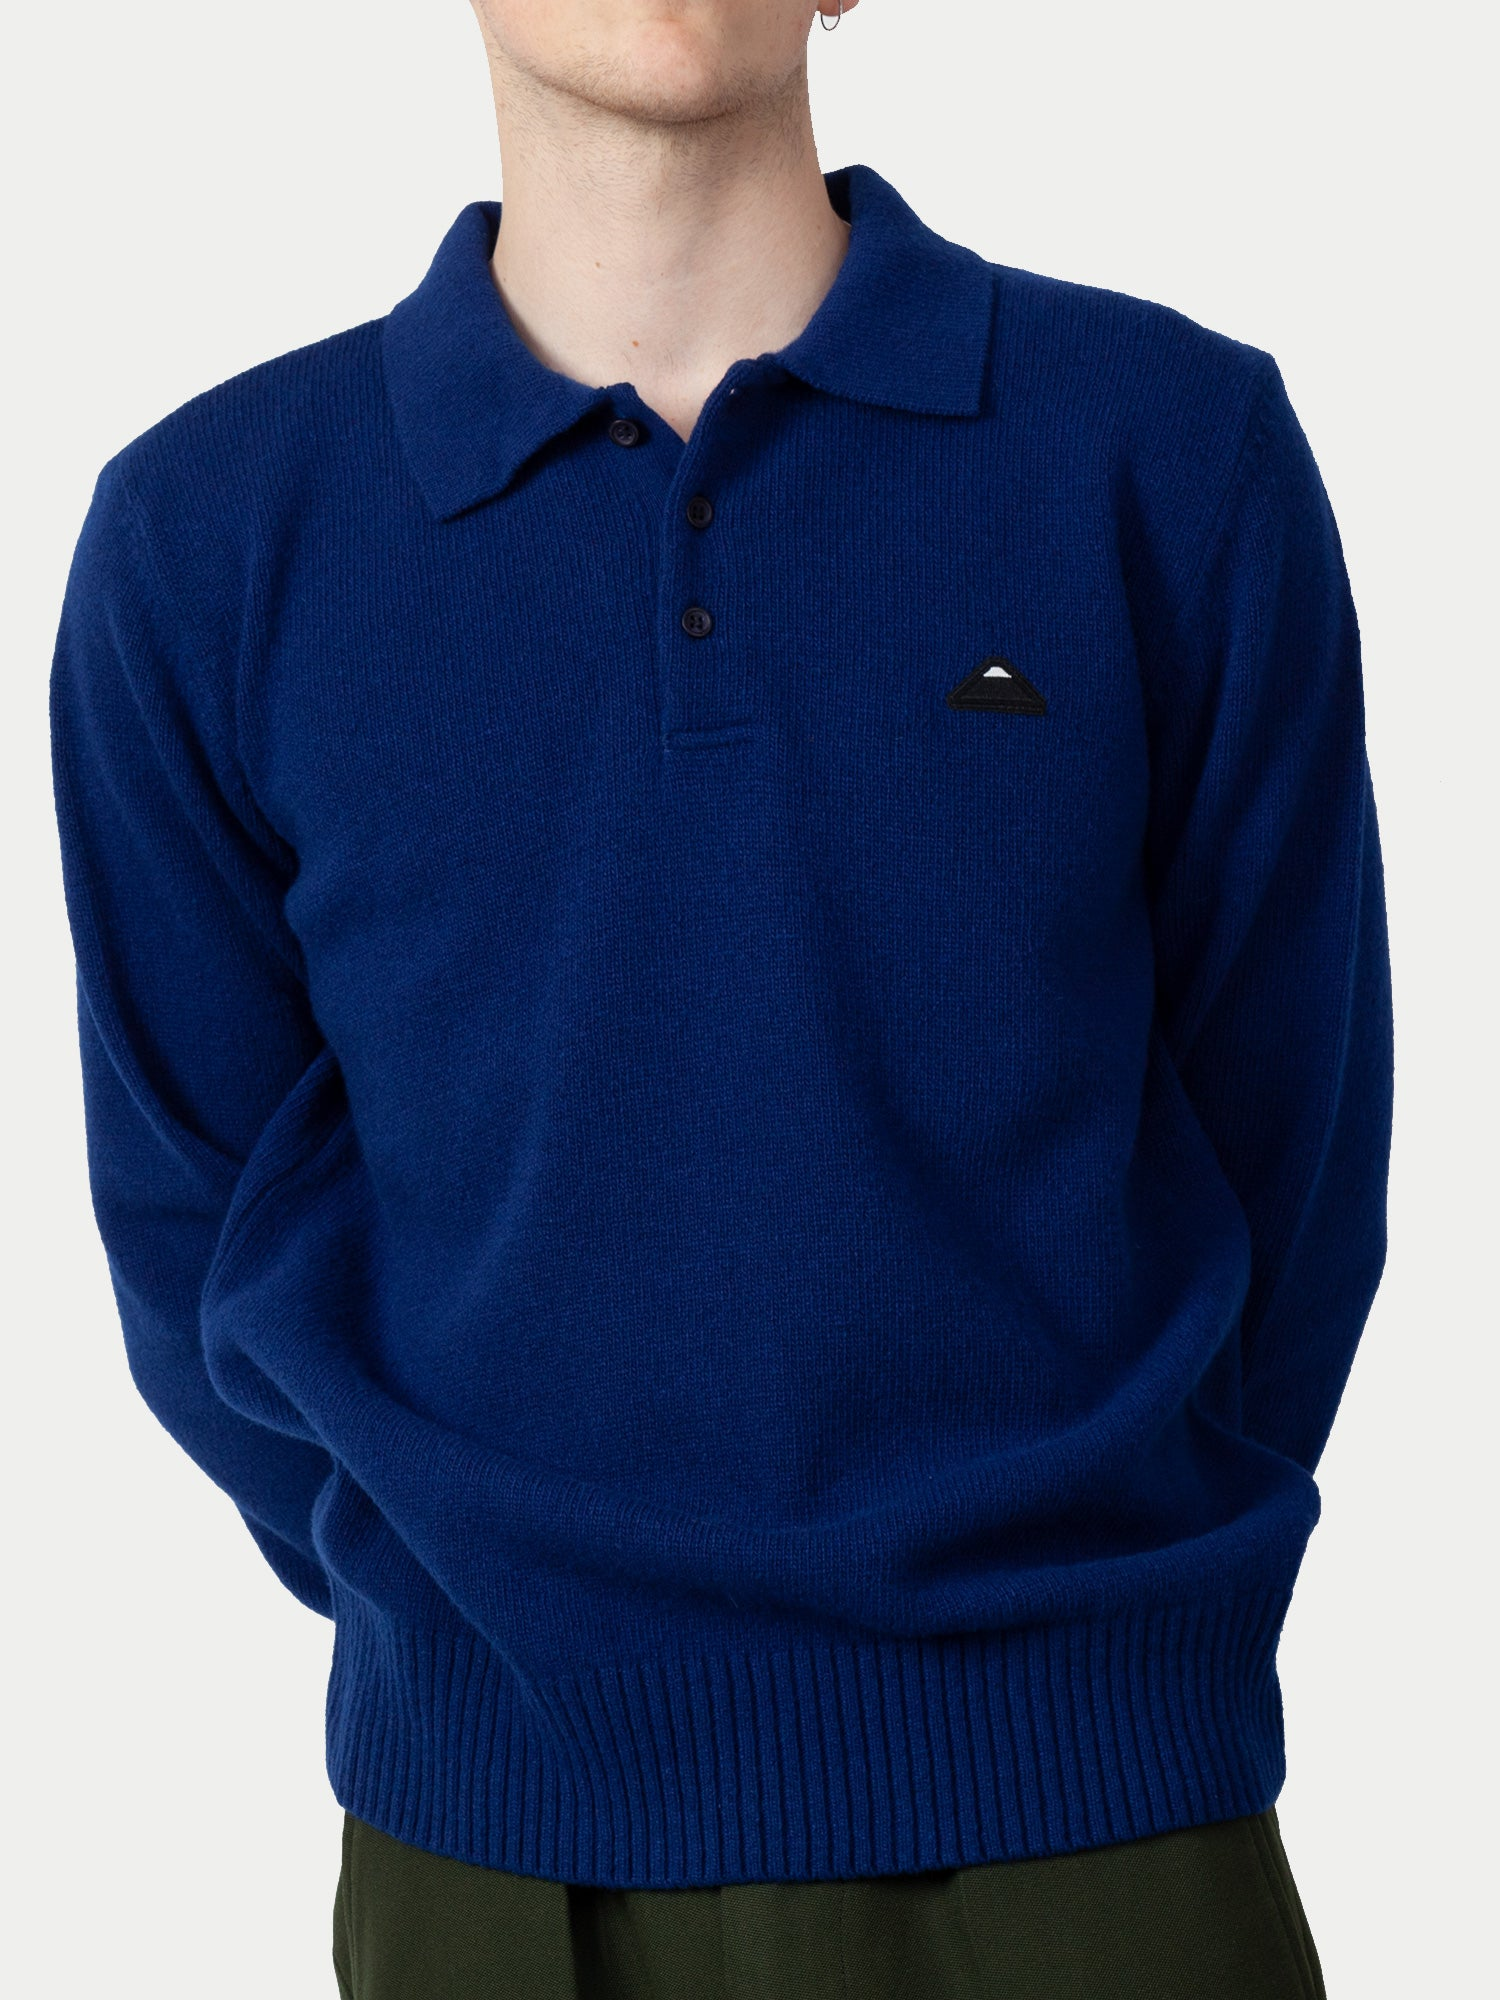 Edwin Don Polo Sweater (Mazarine Blue) 1